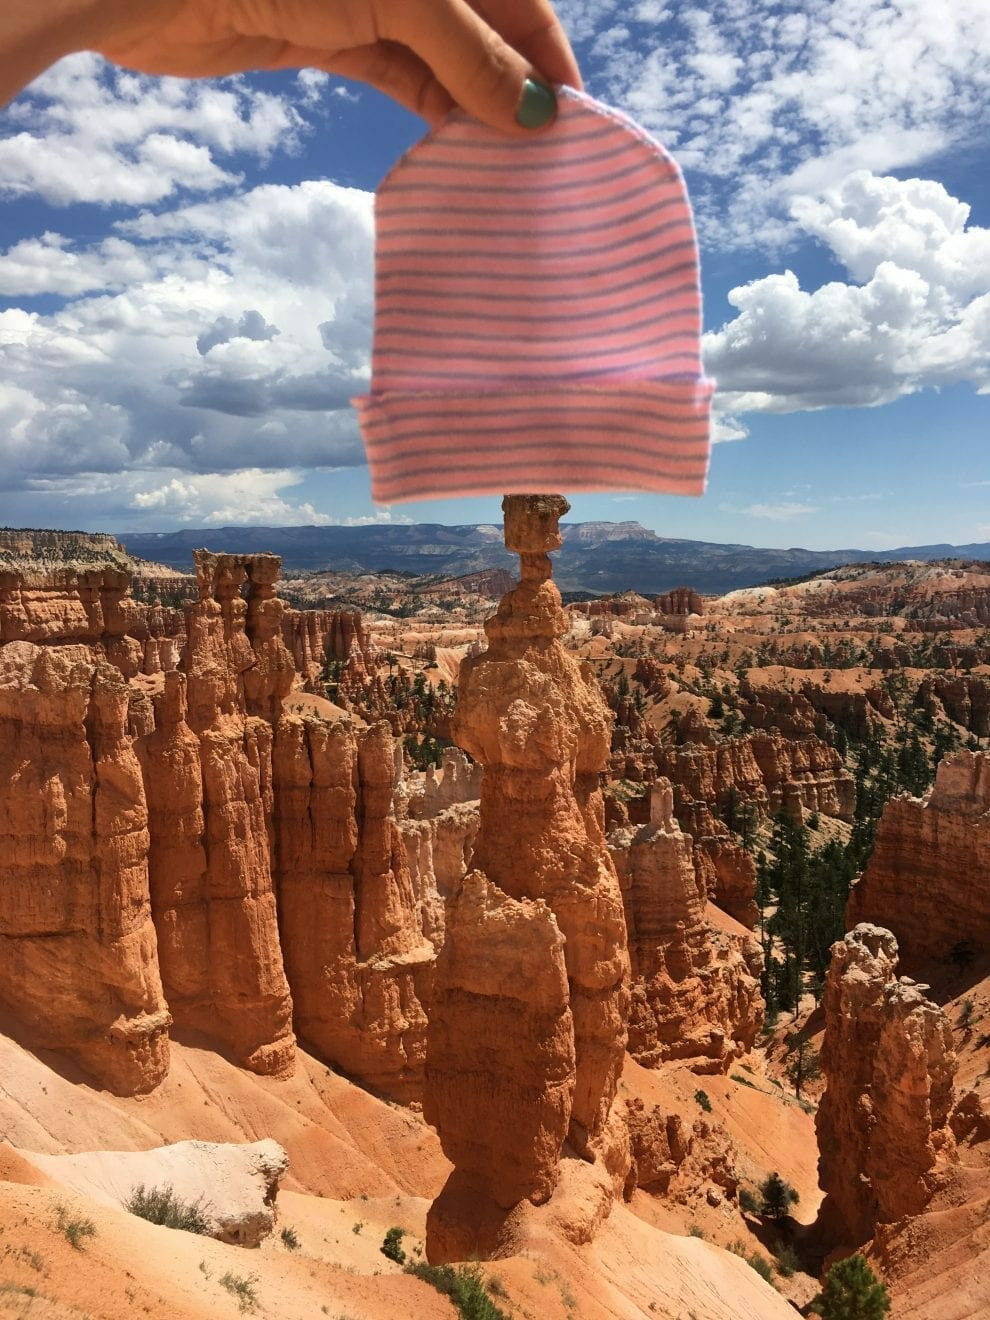 Marlowe's hat in Bryce Canyon, contributed by mother Bethany